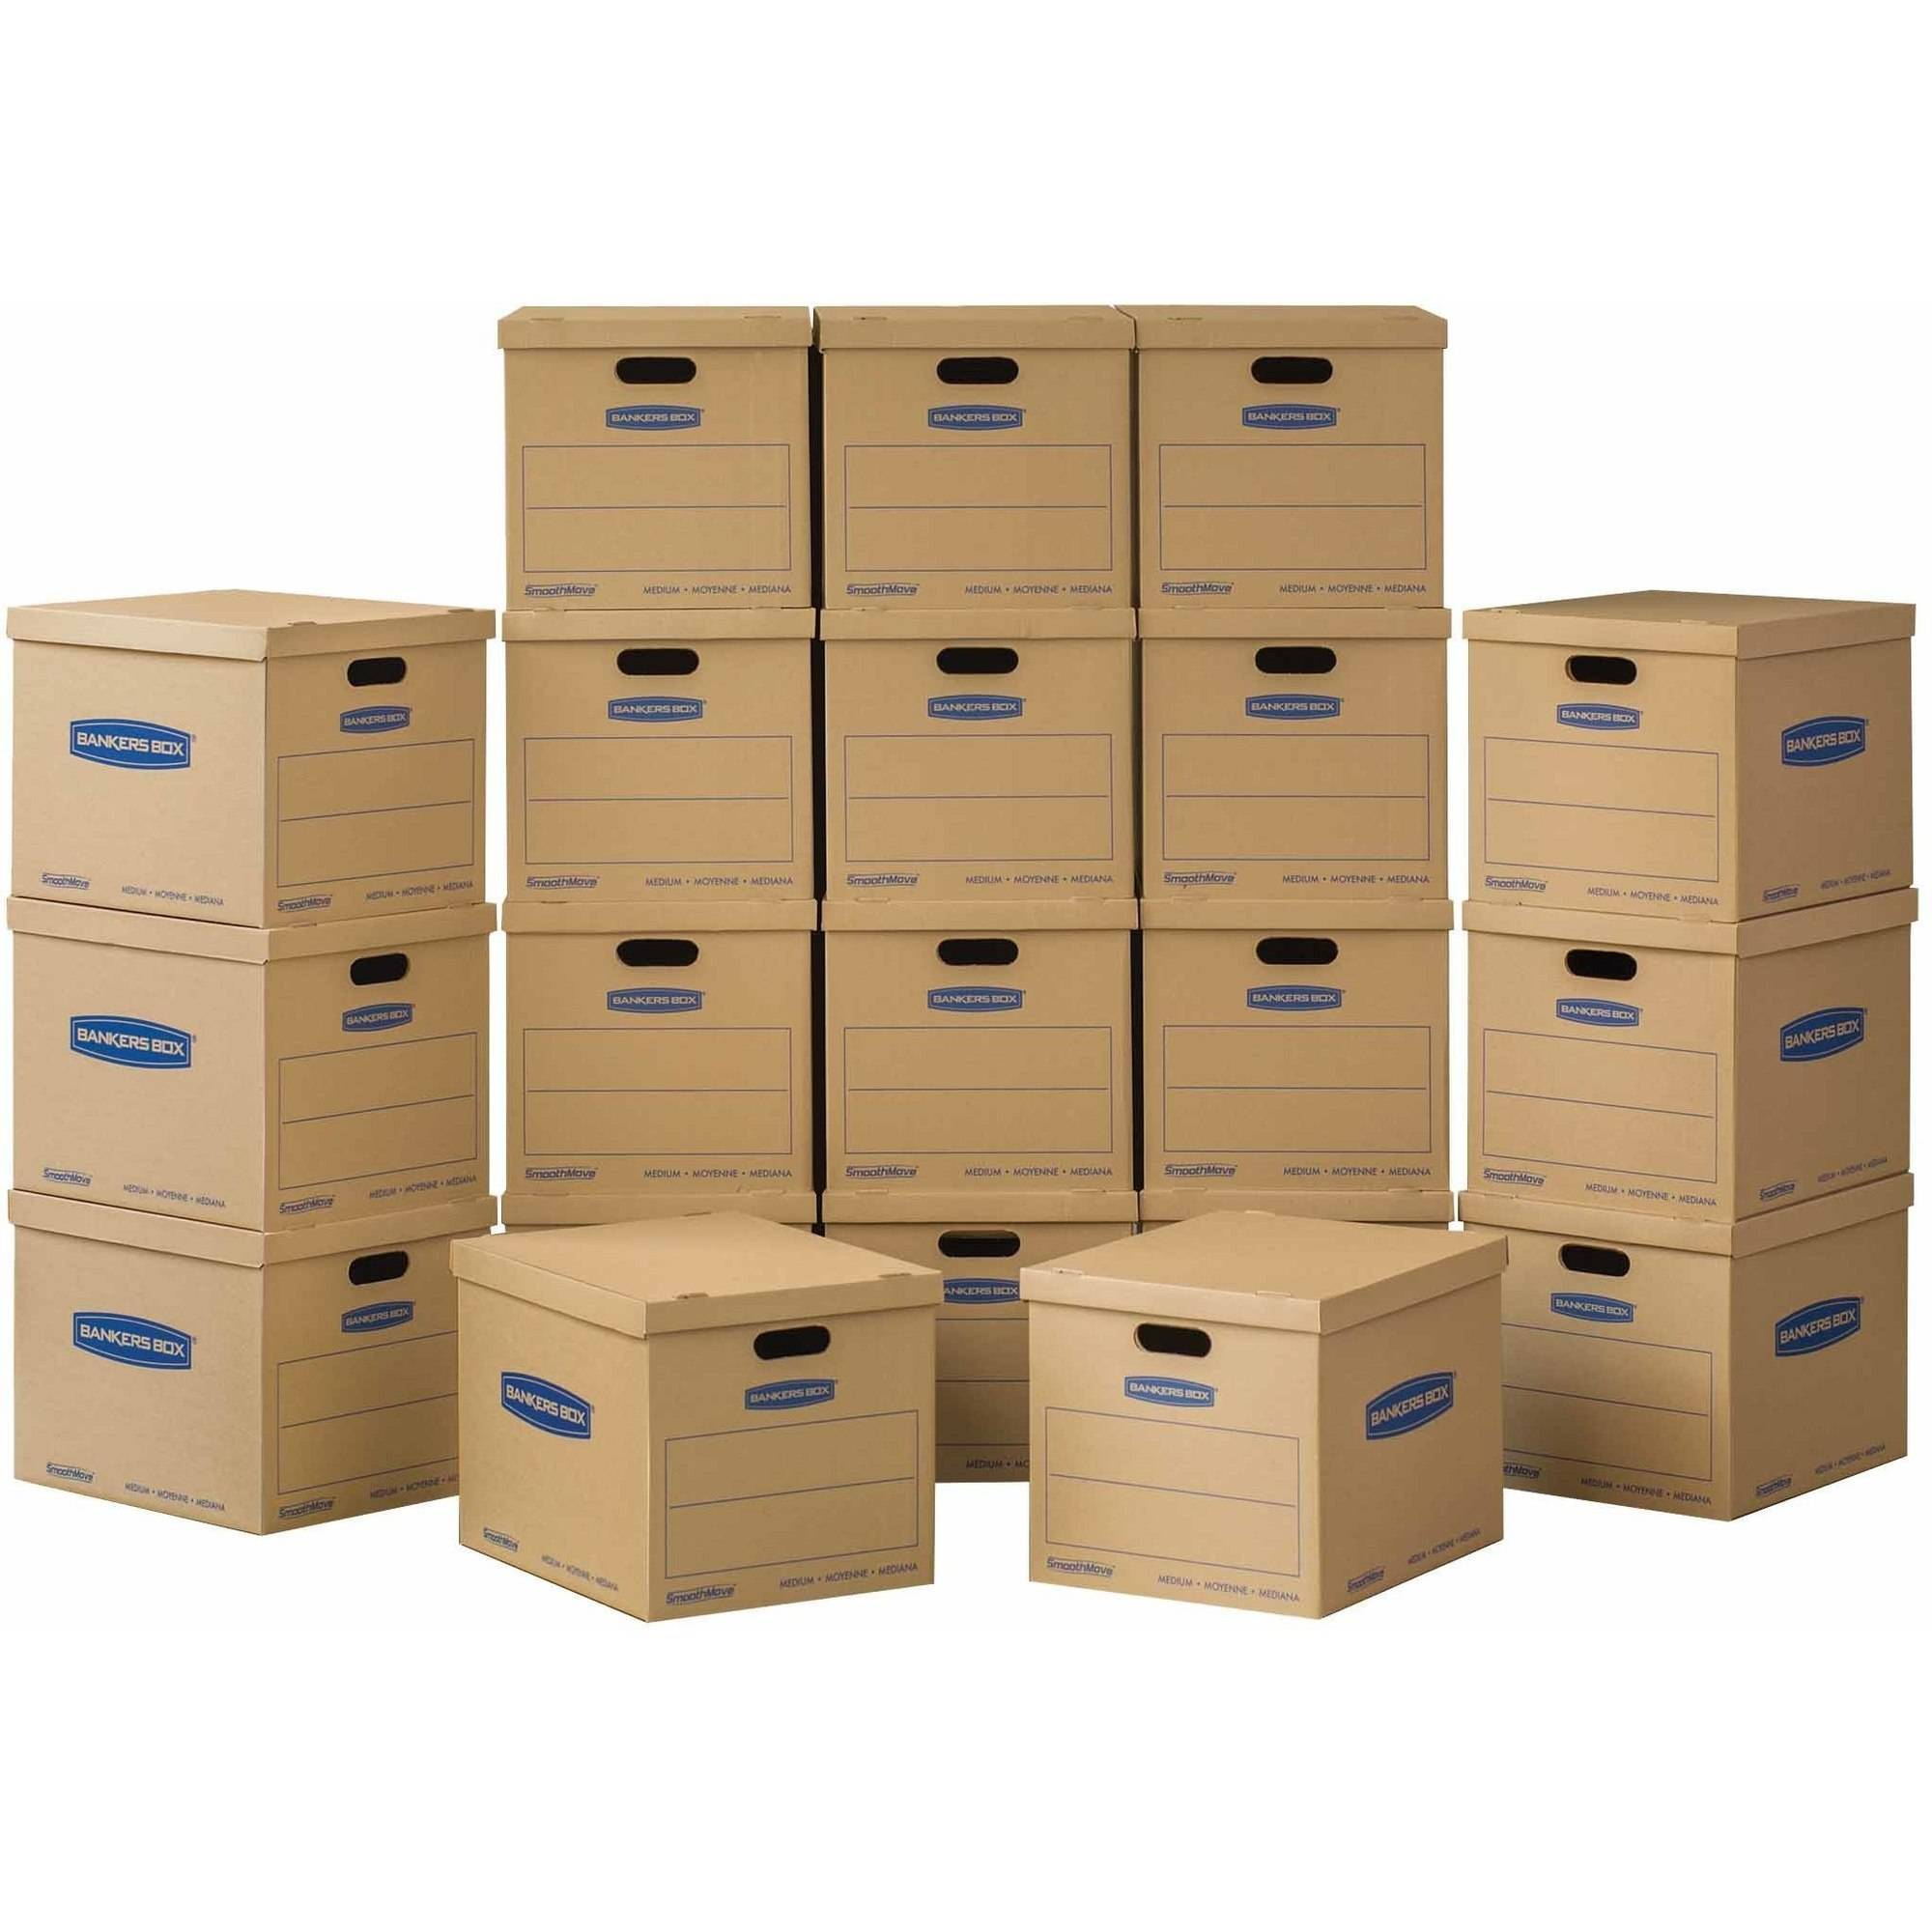 Bankers Box SmoothMove Classic Moving Boxes Medium 20pk (No Tape Required)